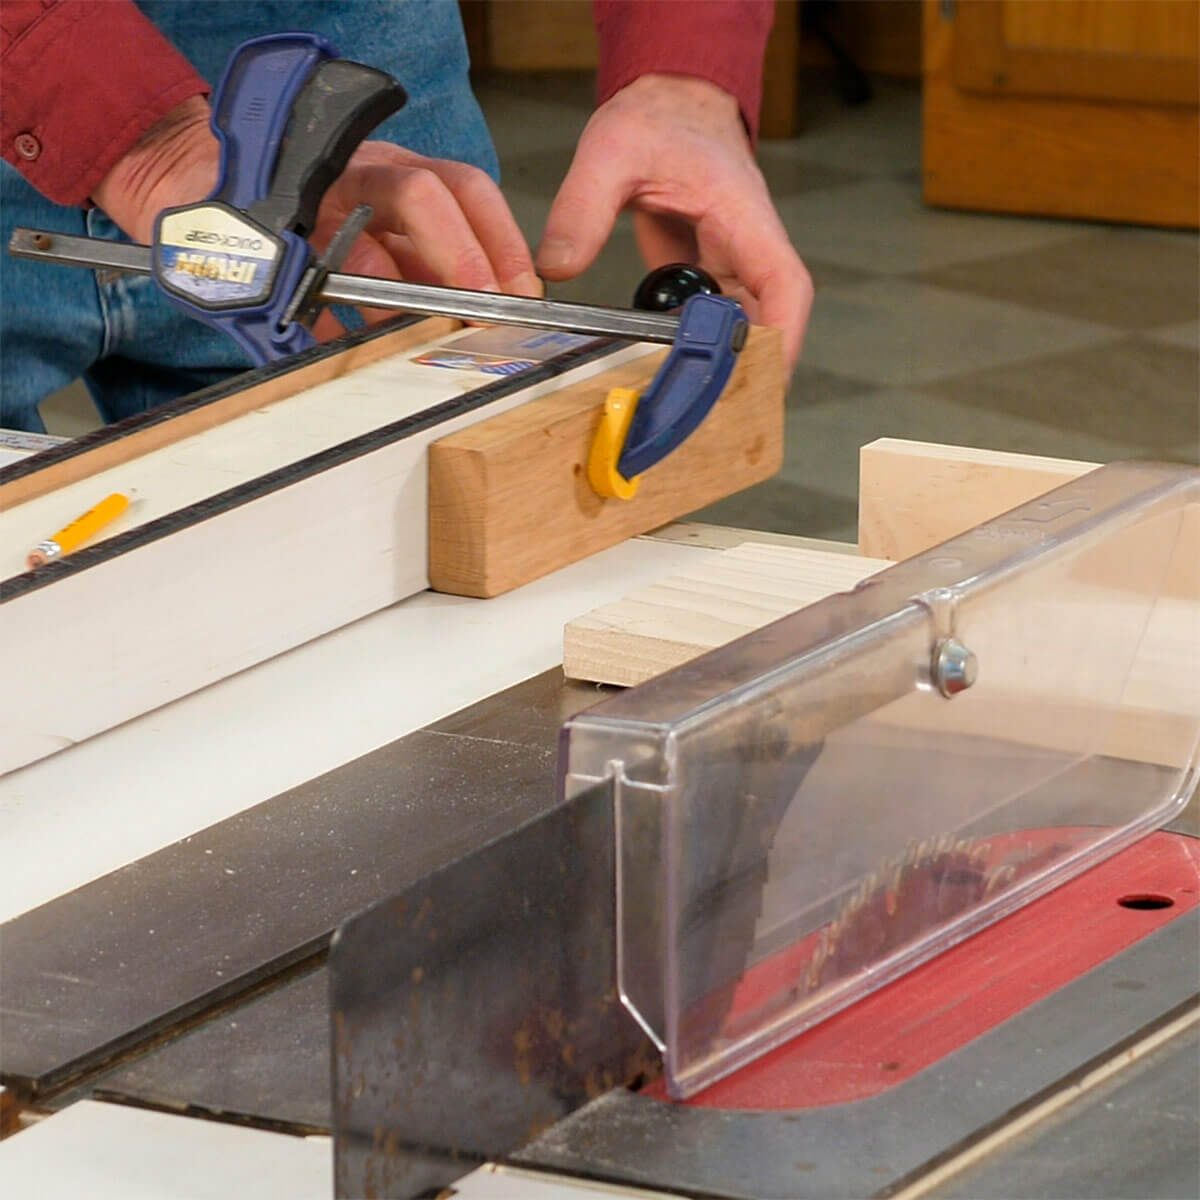 clamp a board to table saw fence